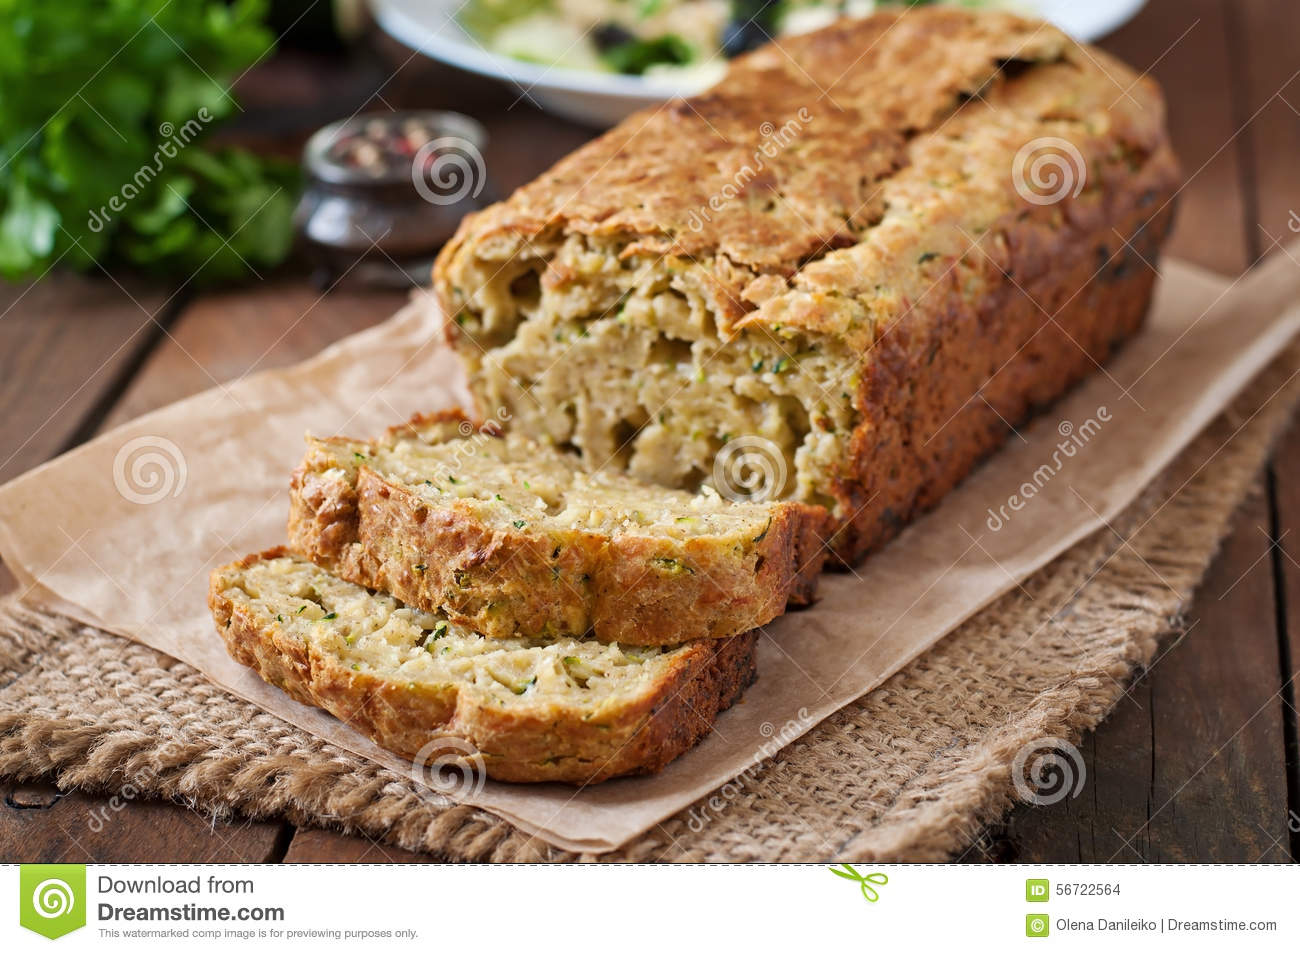 Zucchini bread with cheese